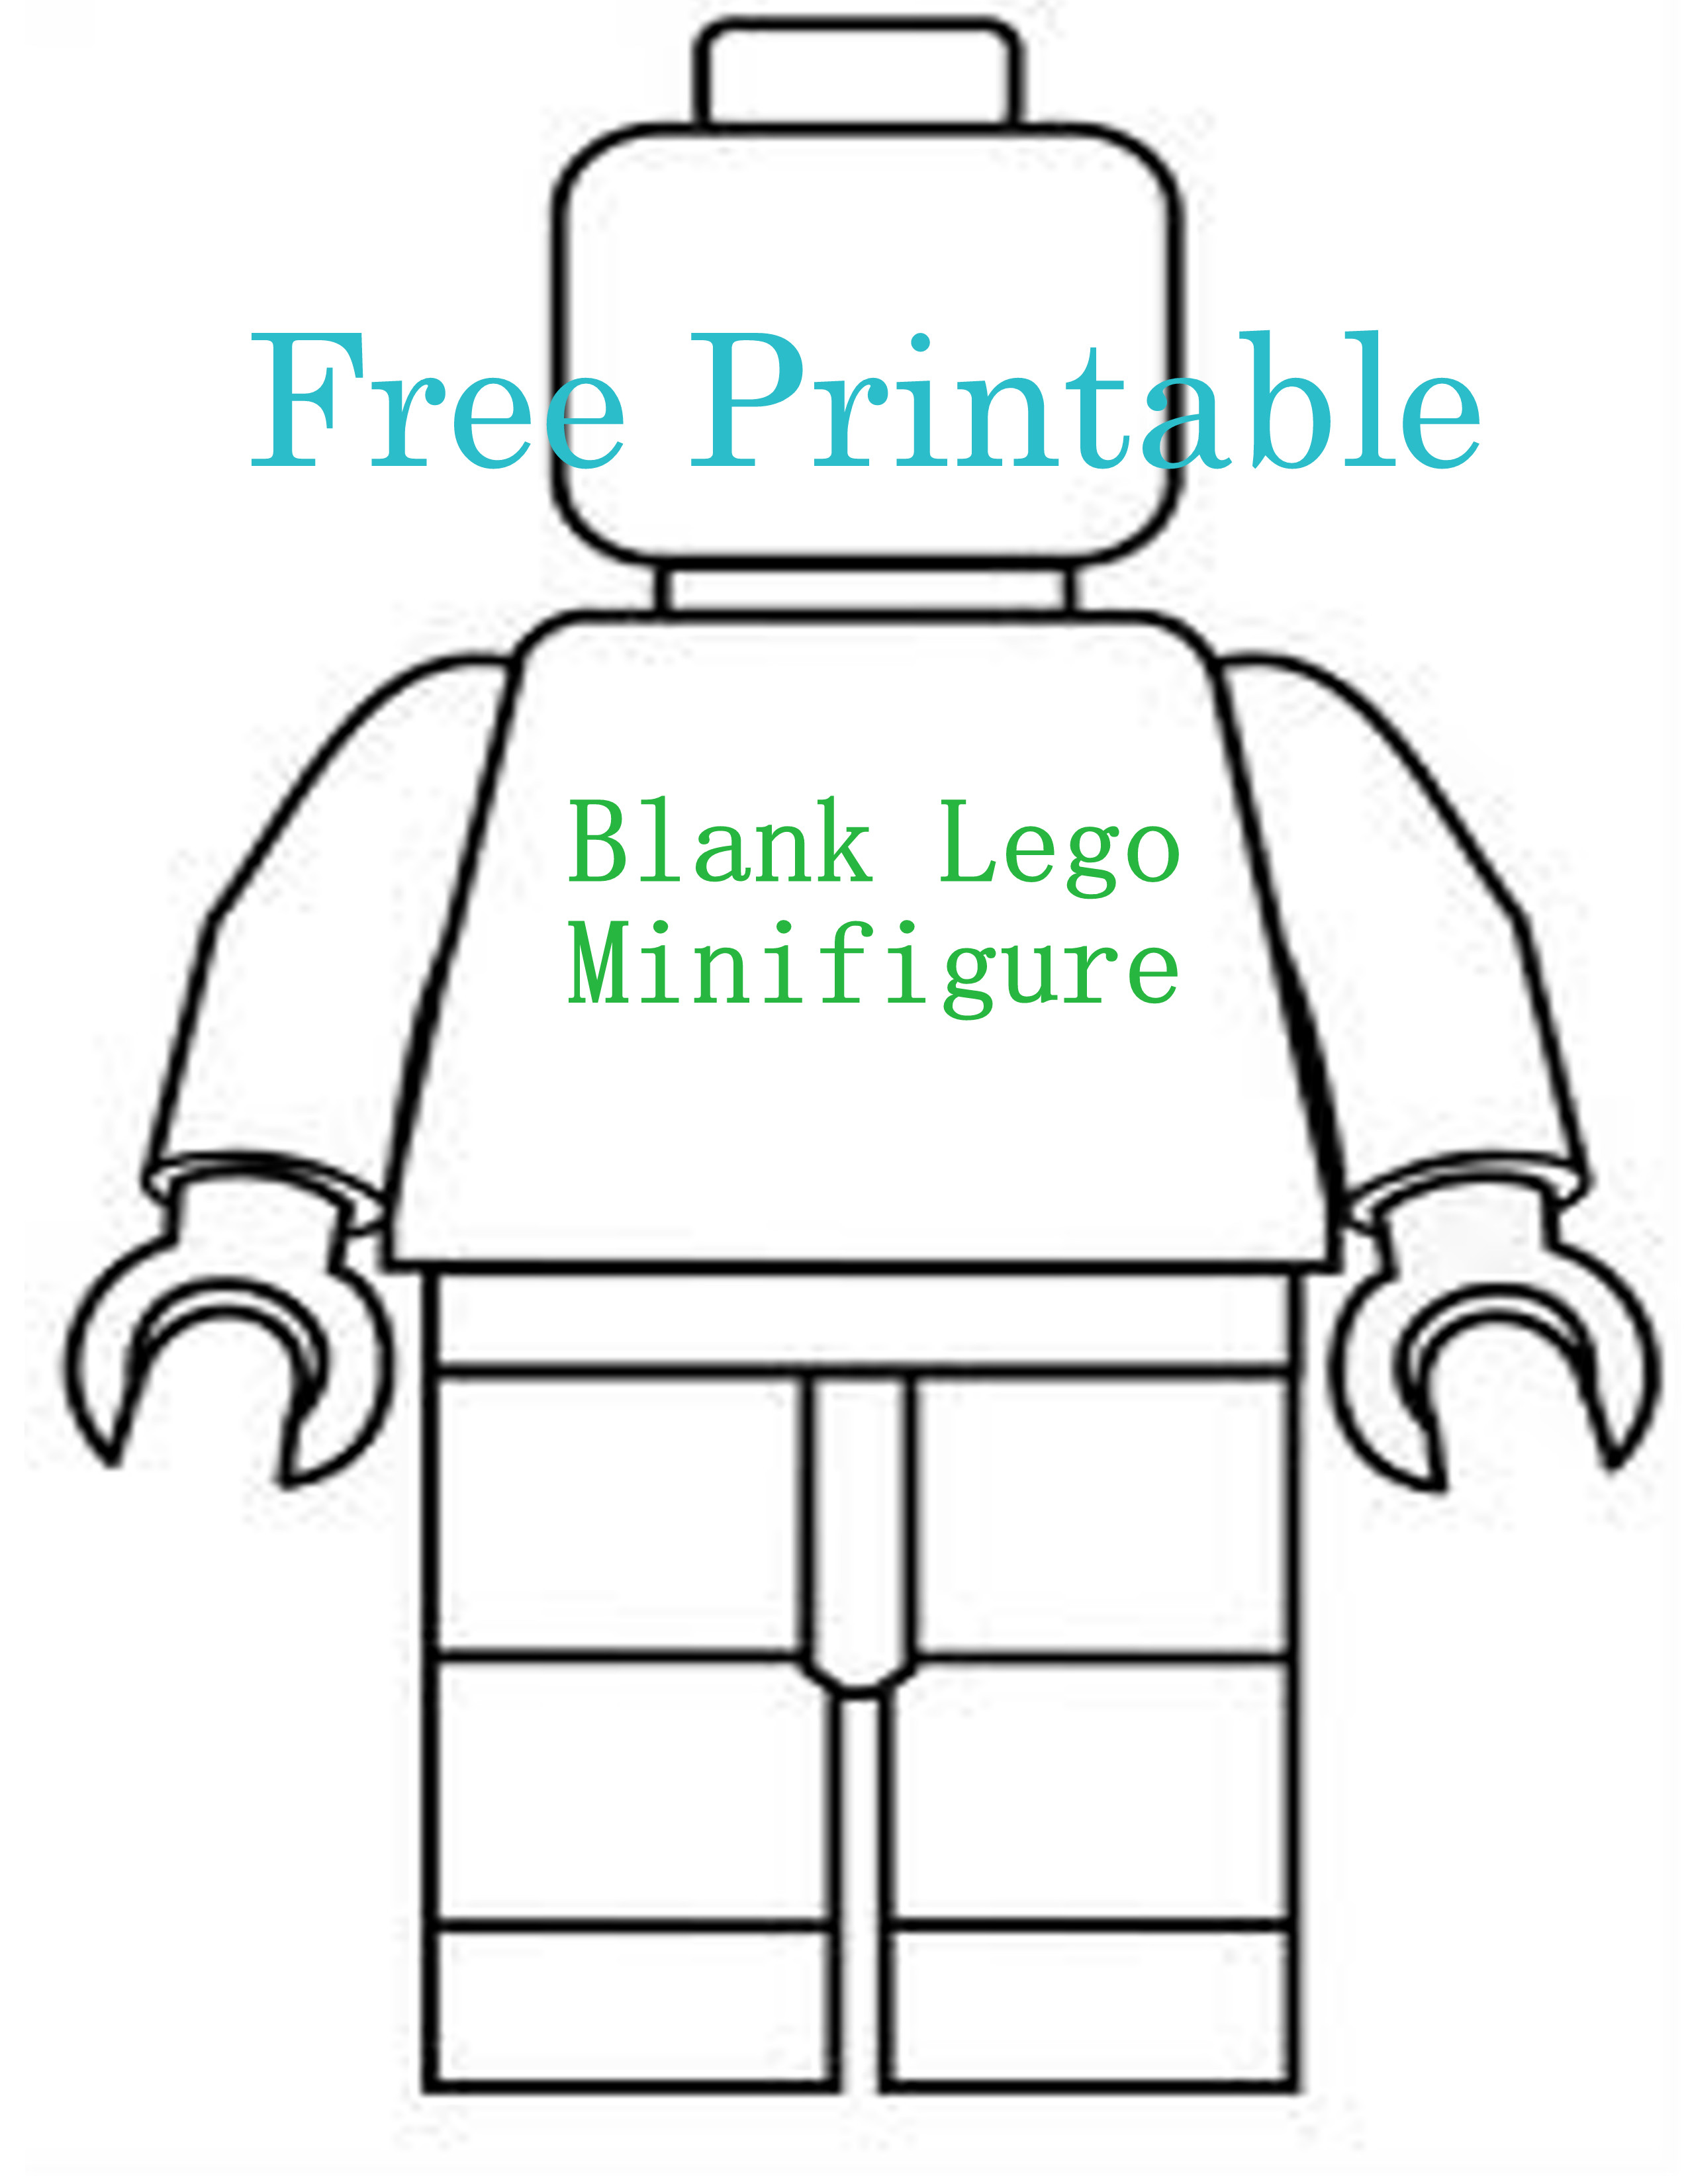 image about Lego Man Printable called Absolutely free Printable ~ Blank Lego Minifigure Lovable BenannaSam